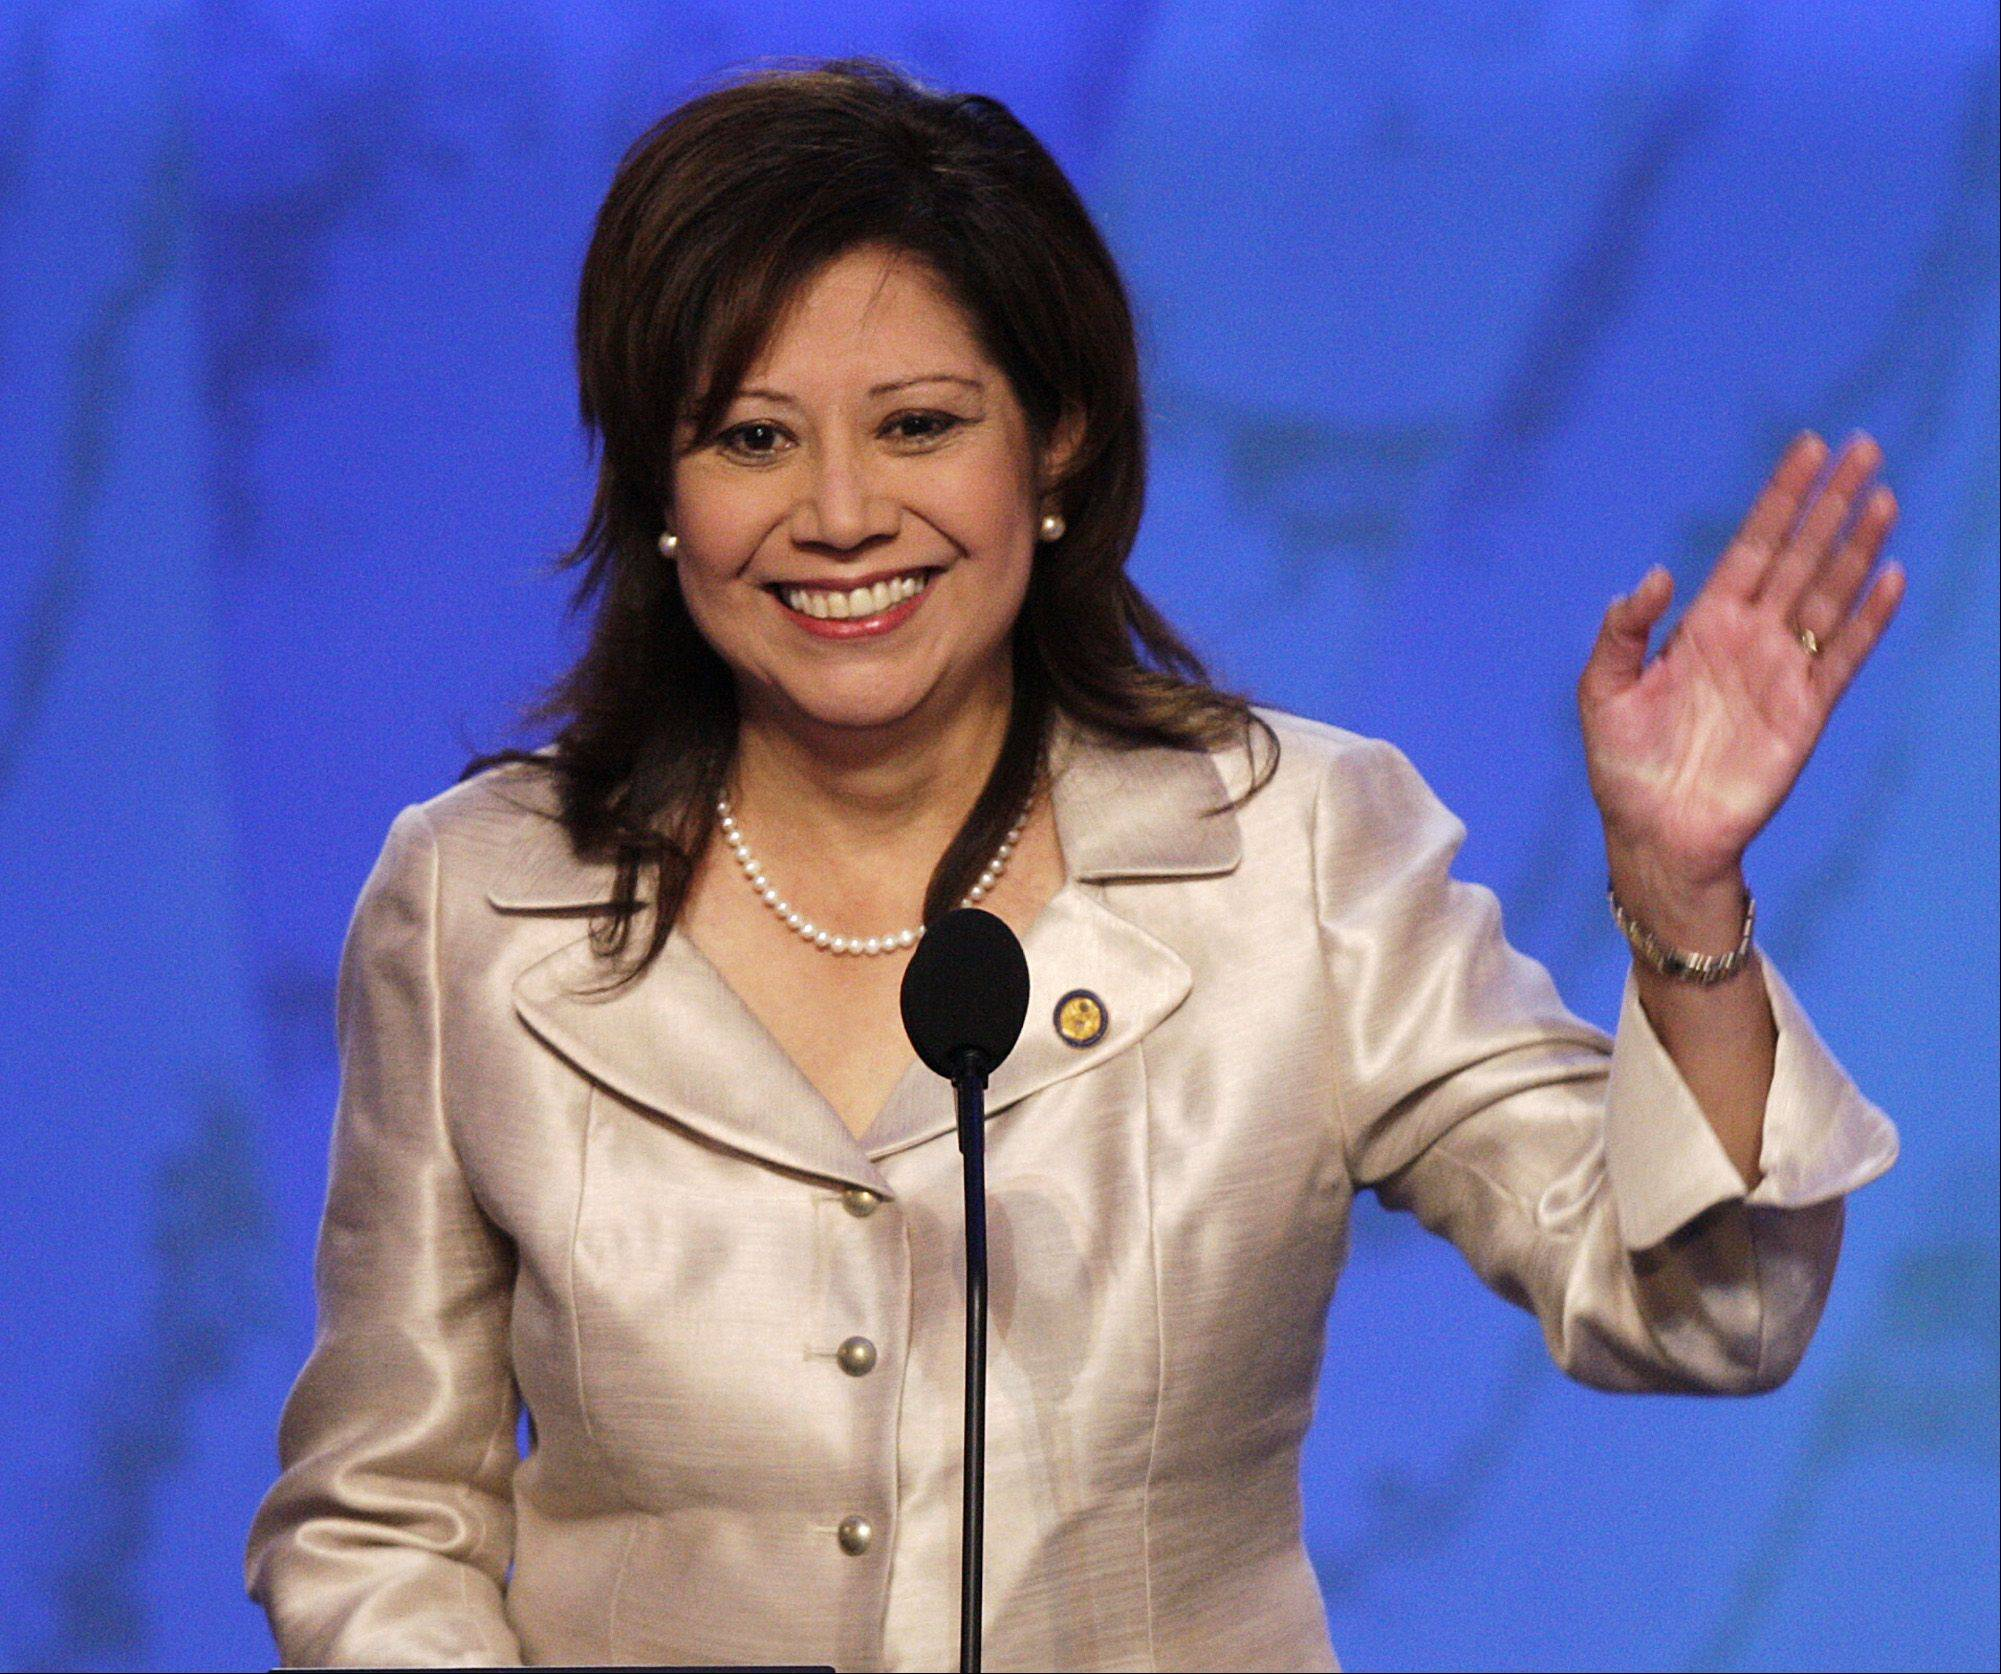 Labor Secretary Hilda Solis, seen here, is resigning and three other members of the president's Cabinet are deciding to stay on amid concerns about diversity in Barack Obama's inner circle.